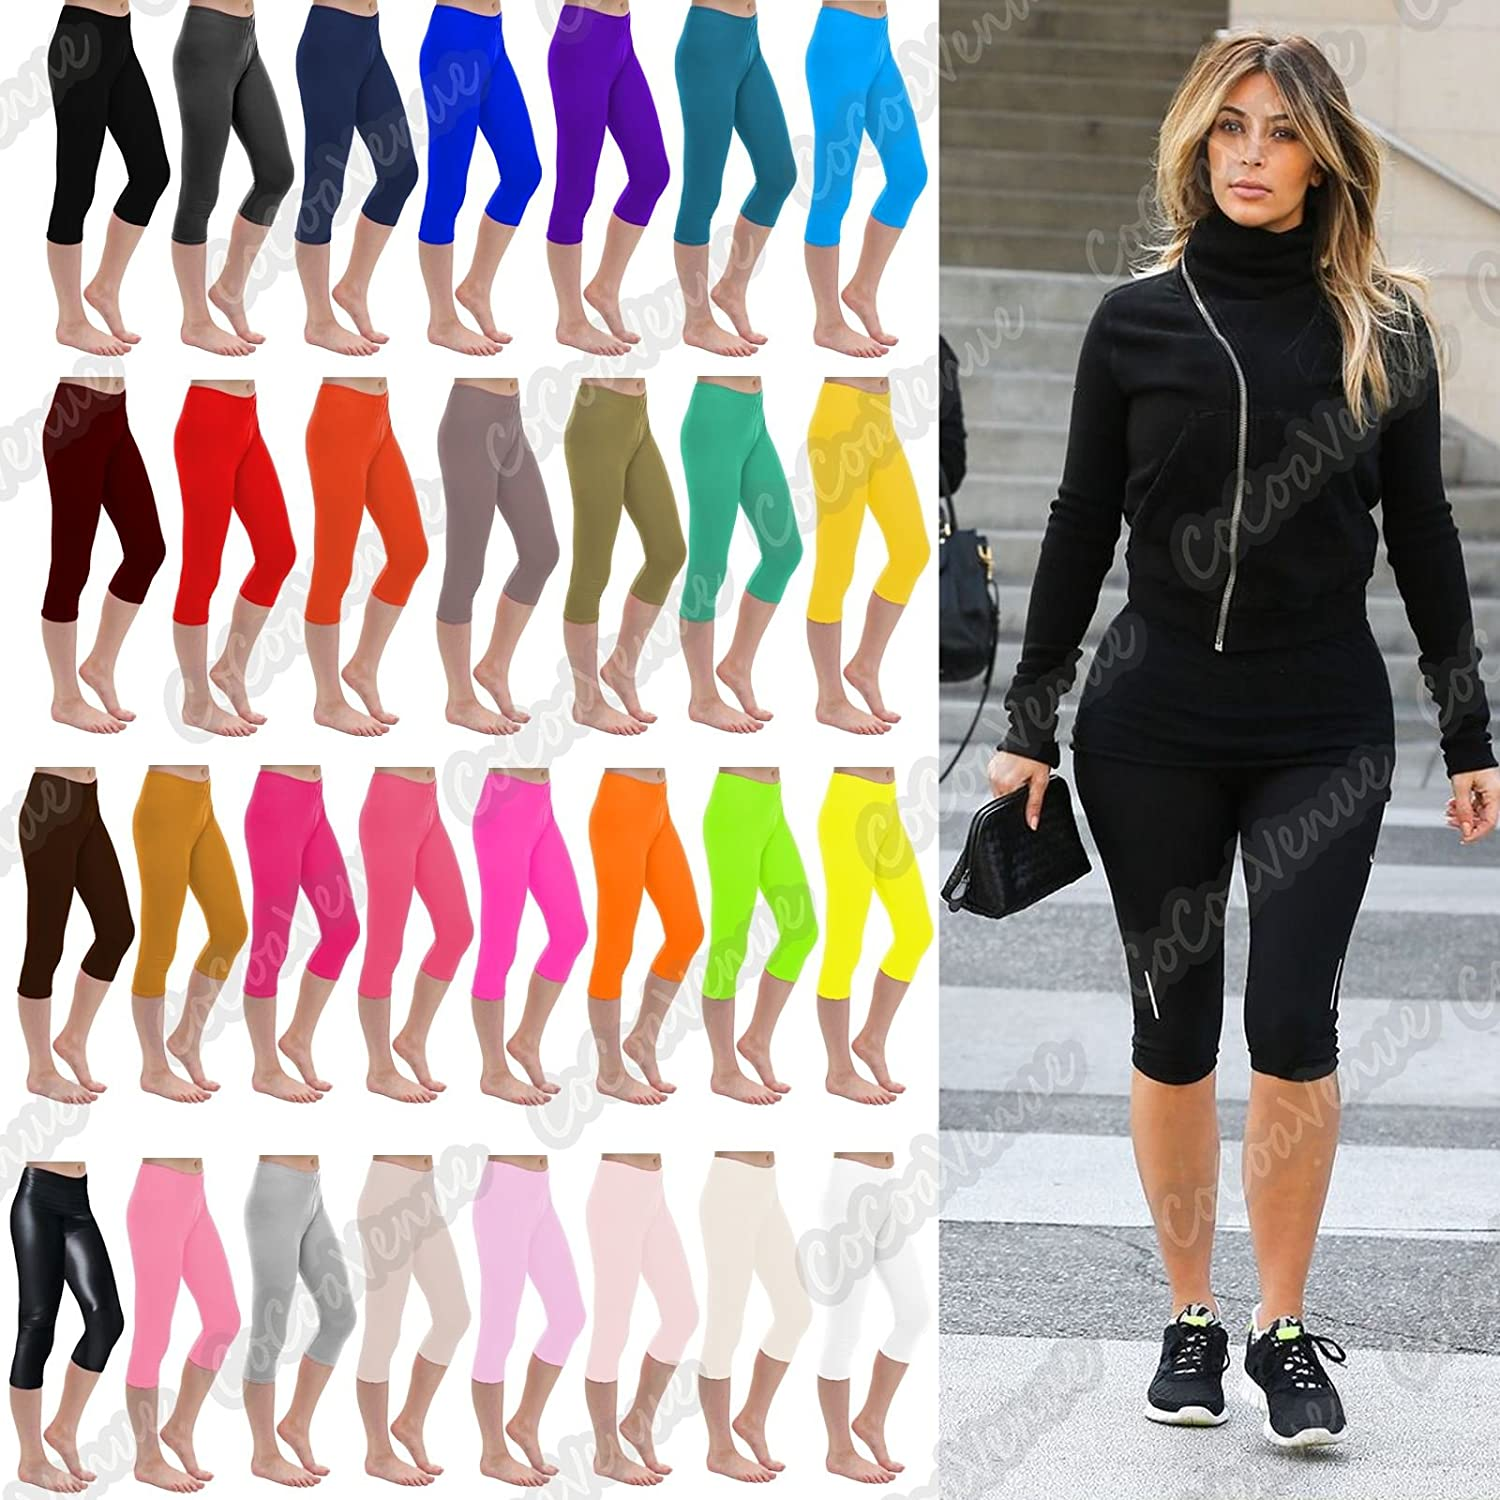 janisramone Womens Ladies New Plain Stretchy 3//4 Leggings Workout Tight Gym Cropped Capri Active Pants